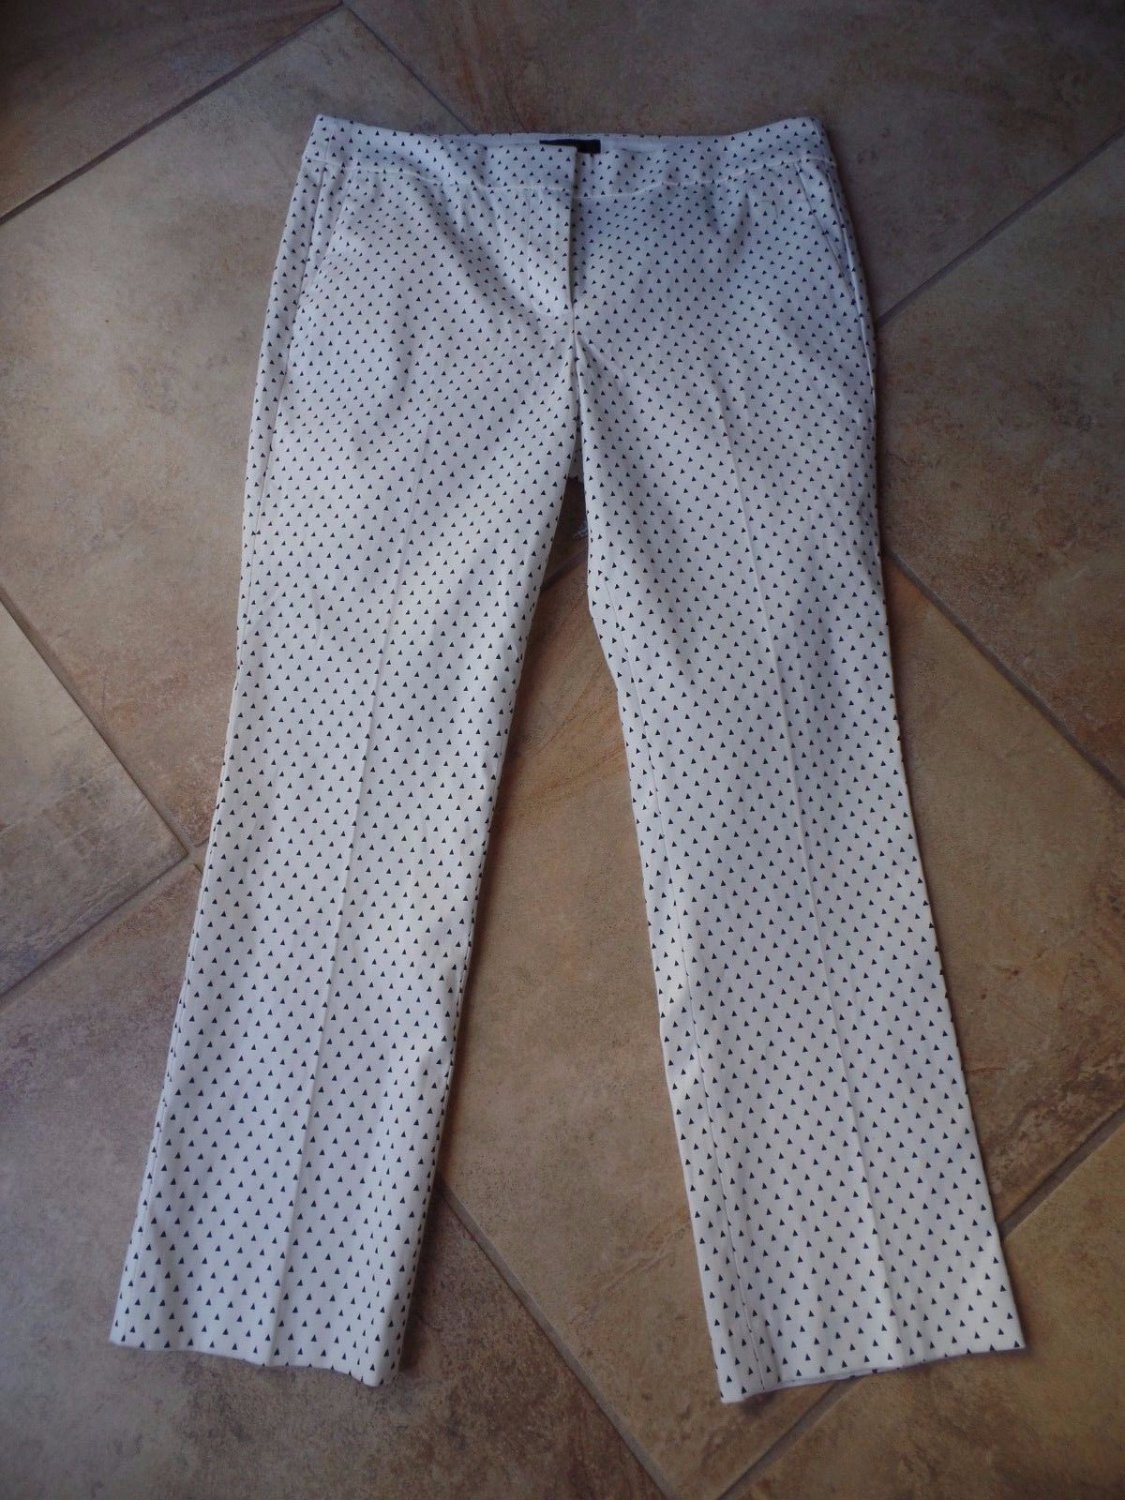 J CREW  Cotton Blend Campbell White/Black Triangle Cropped  Pants 8